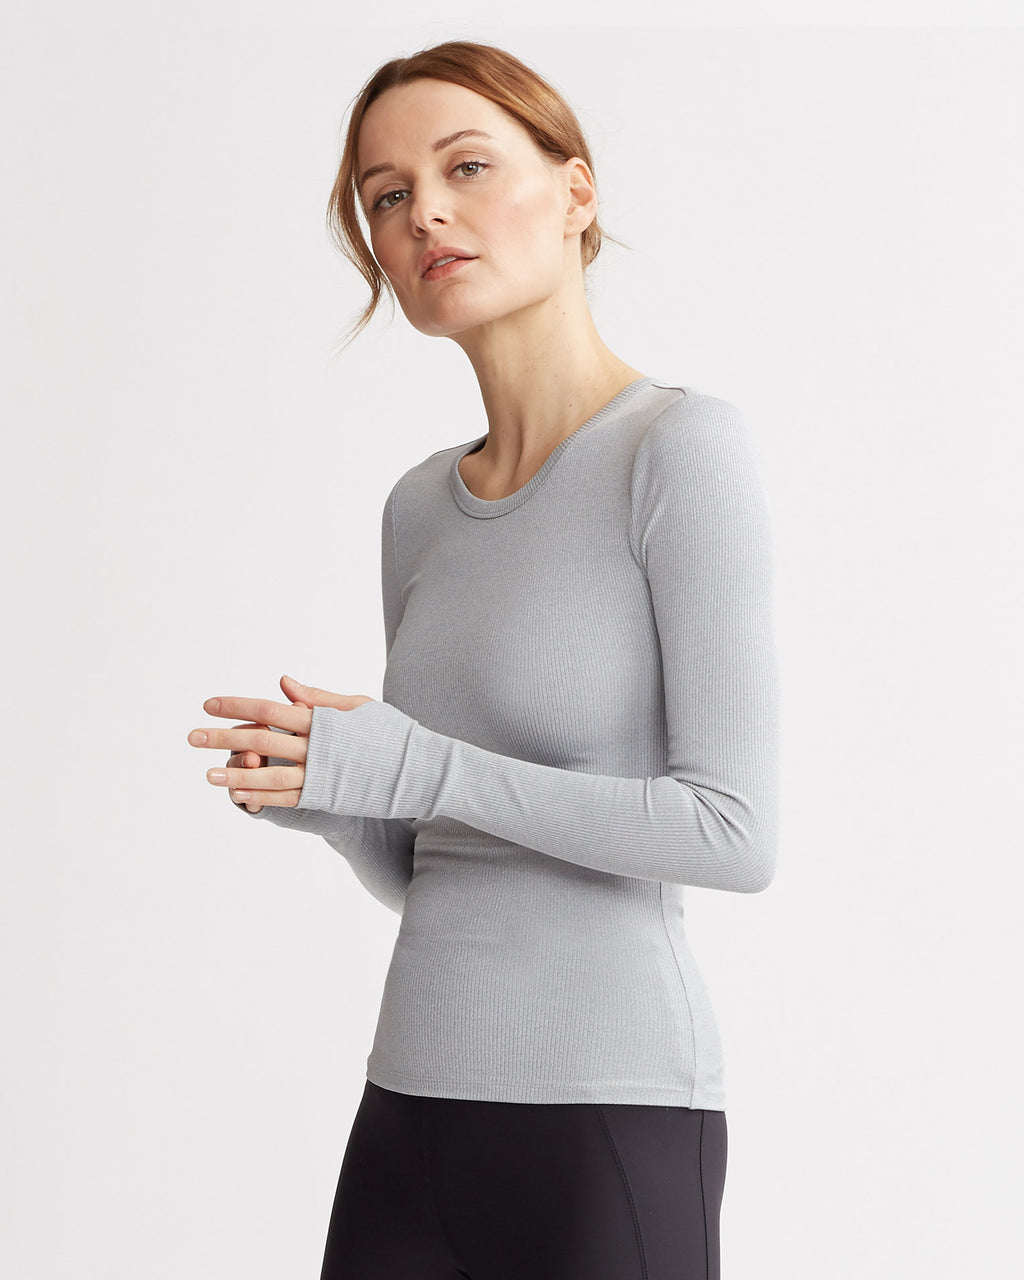 HAINES TOP HT GREY